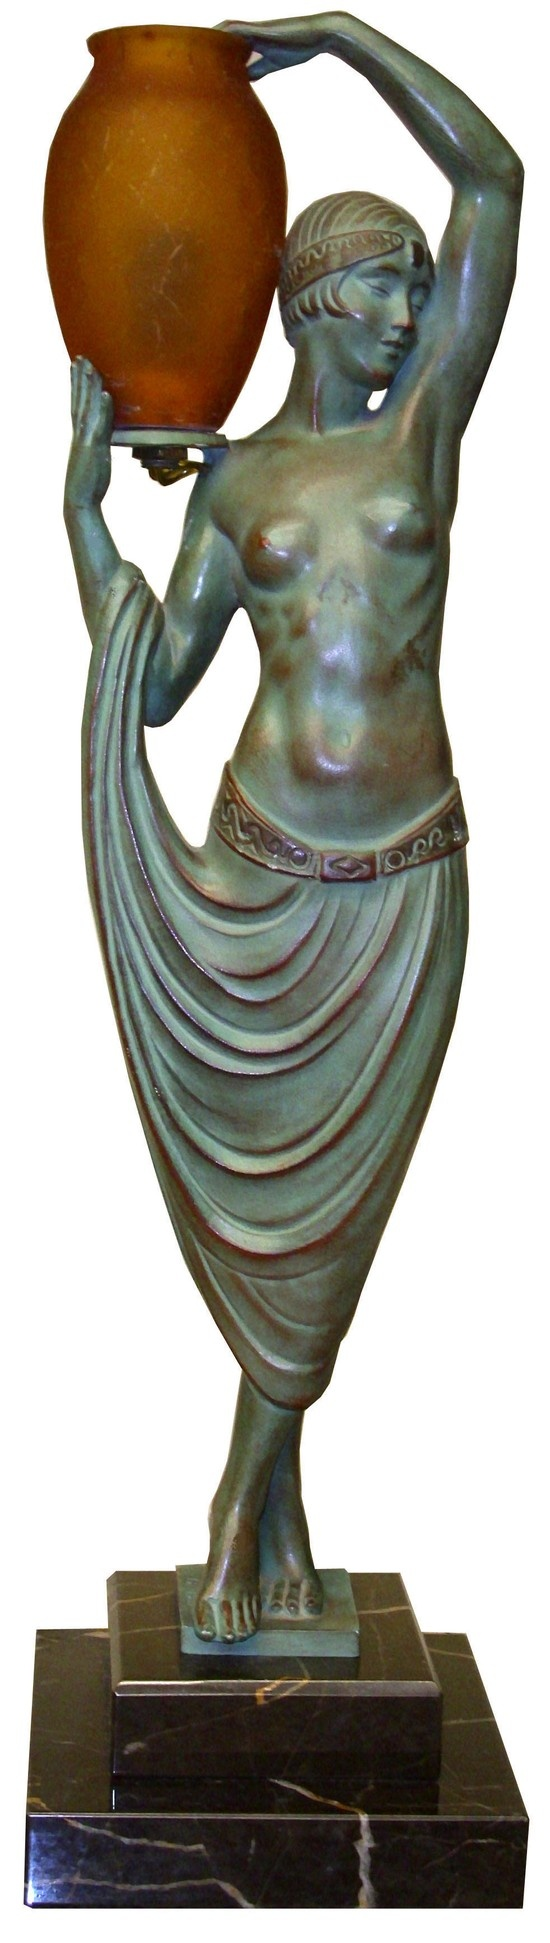 French Art Deco Figural Statue by Pierre LeFaguays, 1920′s.